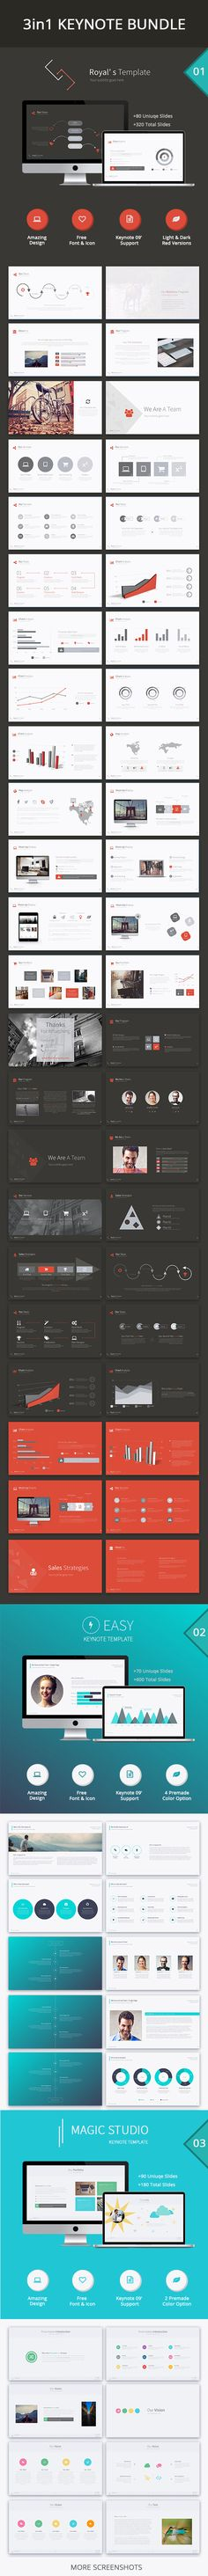 Bloes PowerPoint Presentation Template Powerpoint presentation - powerpoint presentation